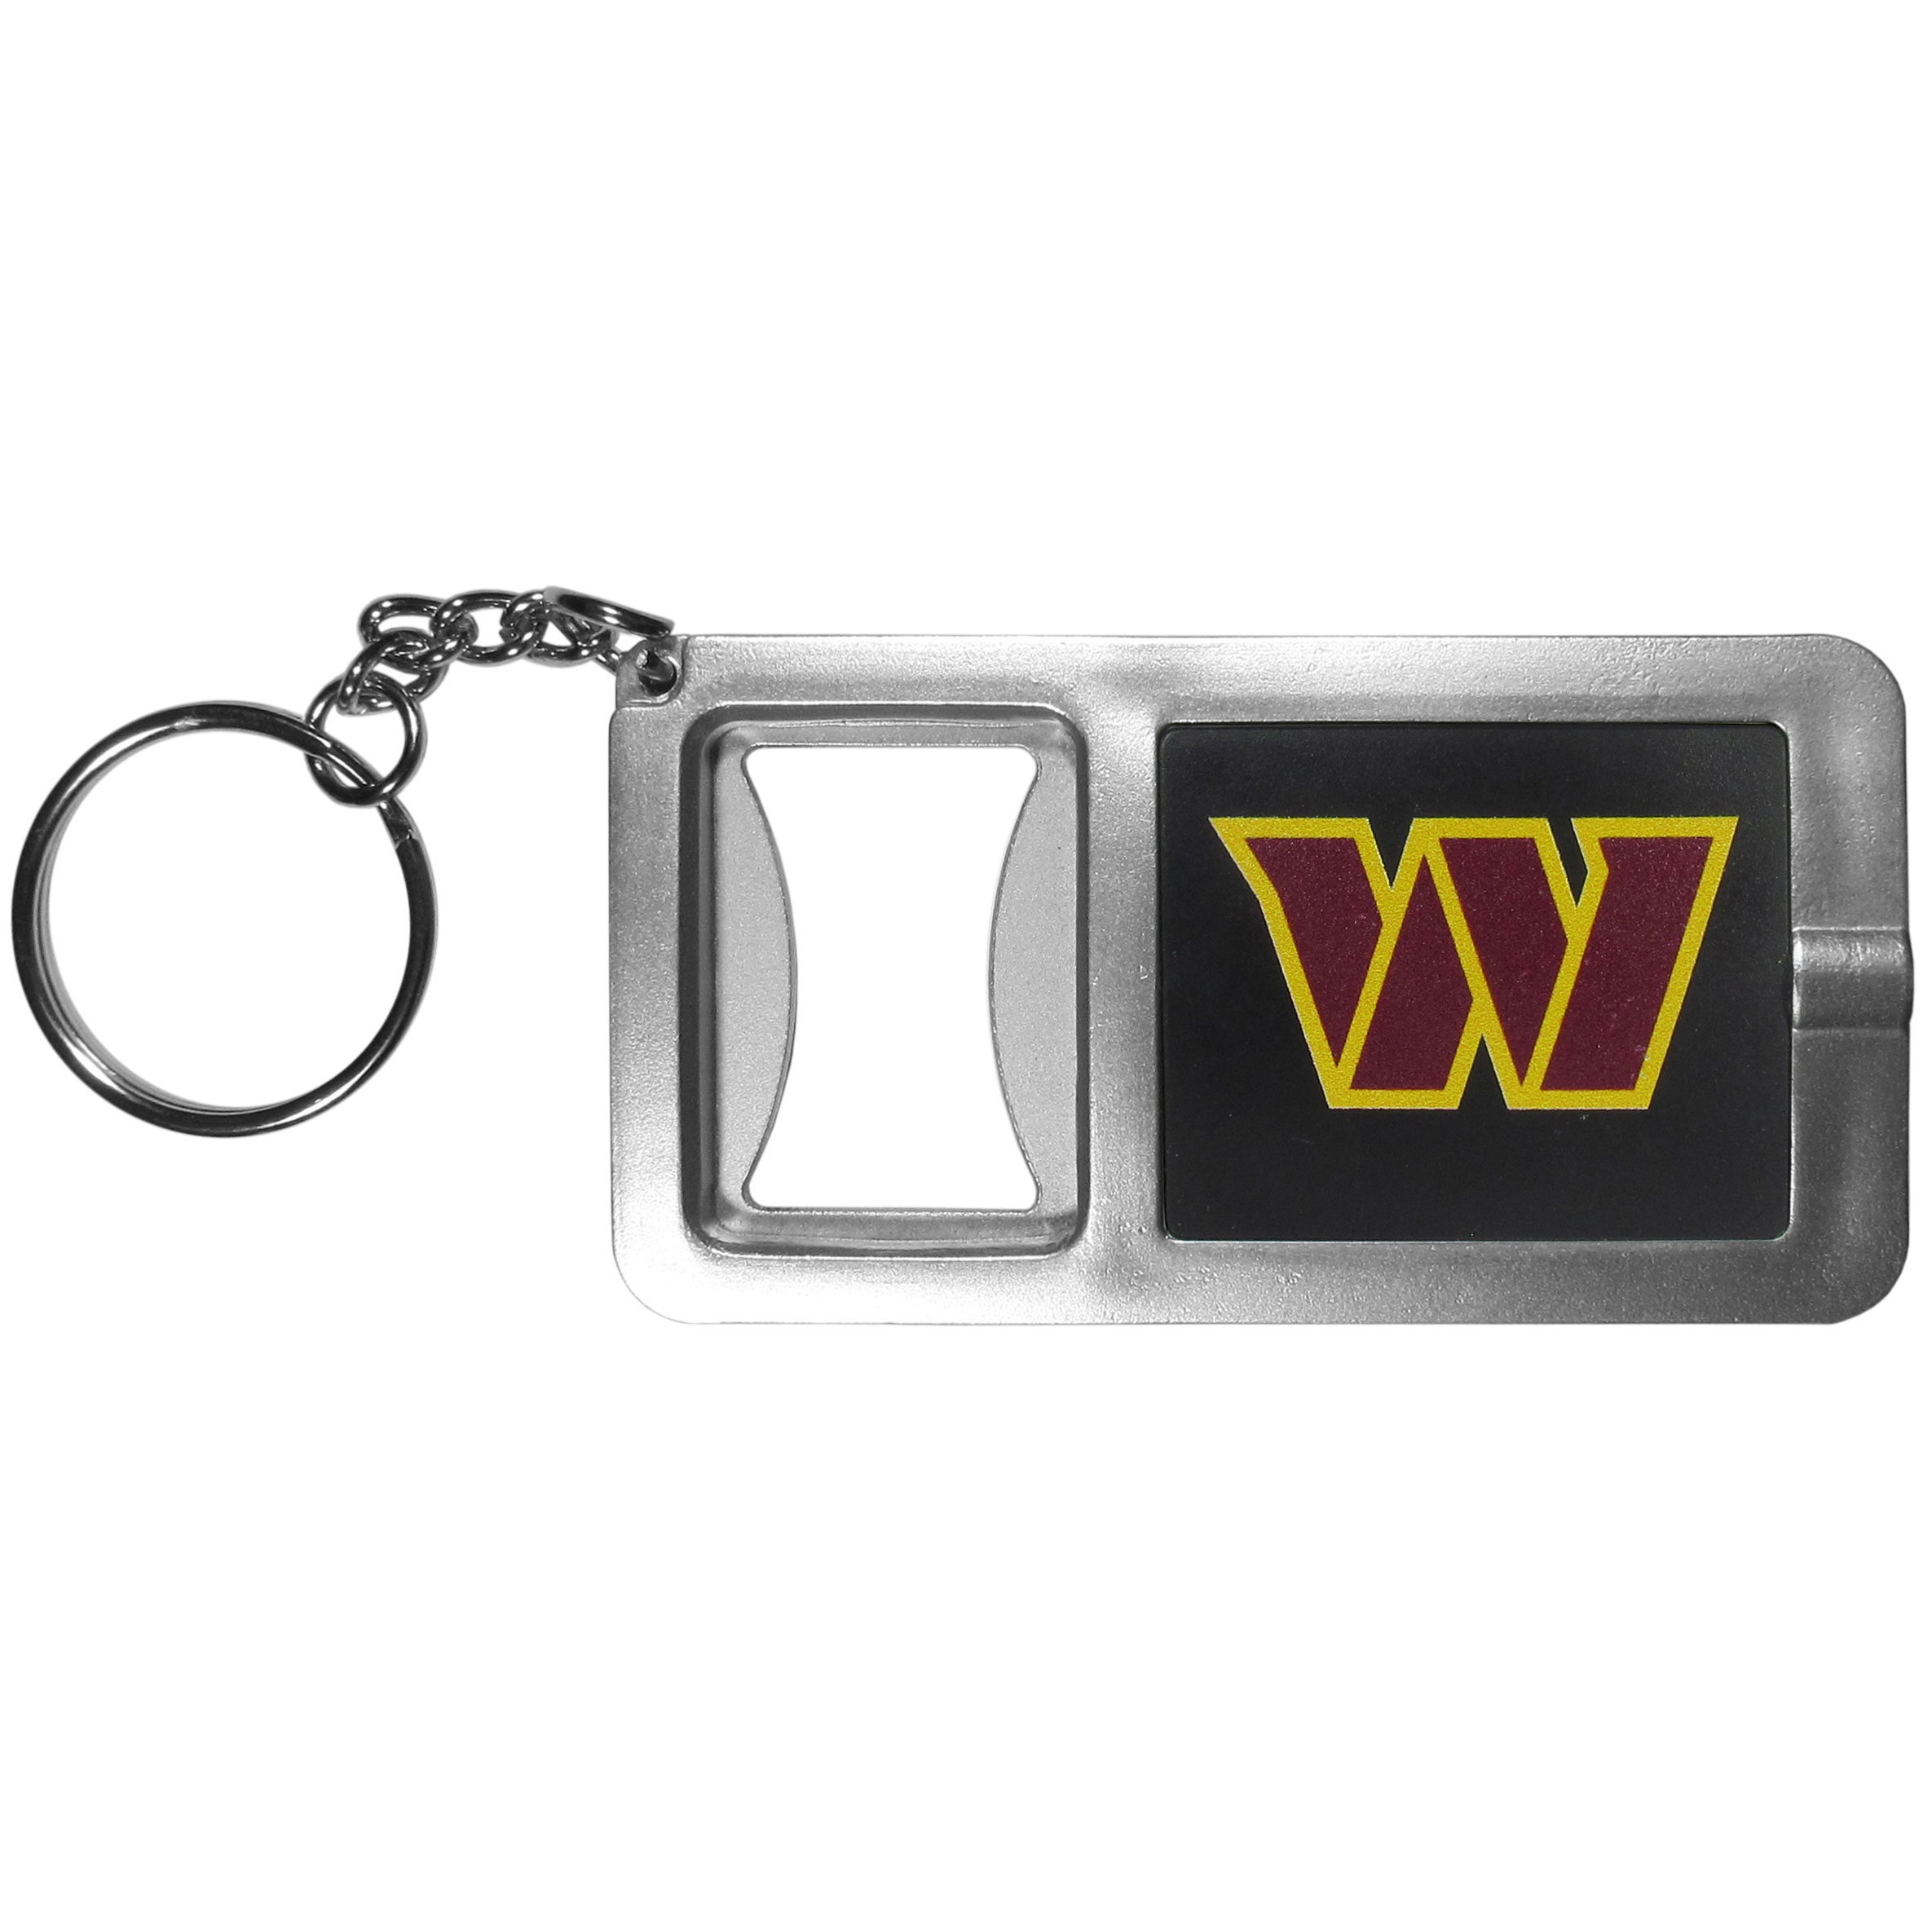 Washington Redskins Flashlight Key Chain with Bottle Opener - Never be without light with our Washington Redskins flashlight keychain that features a handy bottle opener feature. This versatile key chain is perfect for camping and travel and is a great way to show off your team pride!